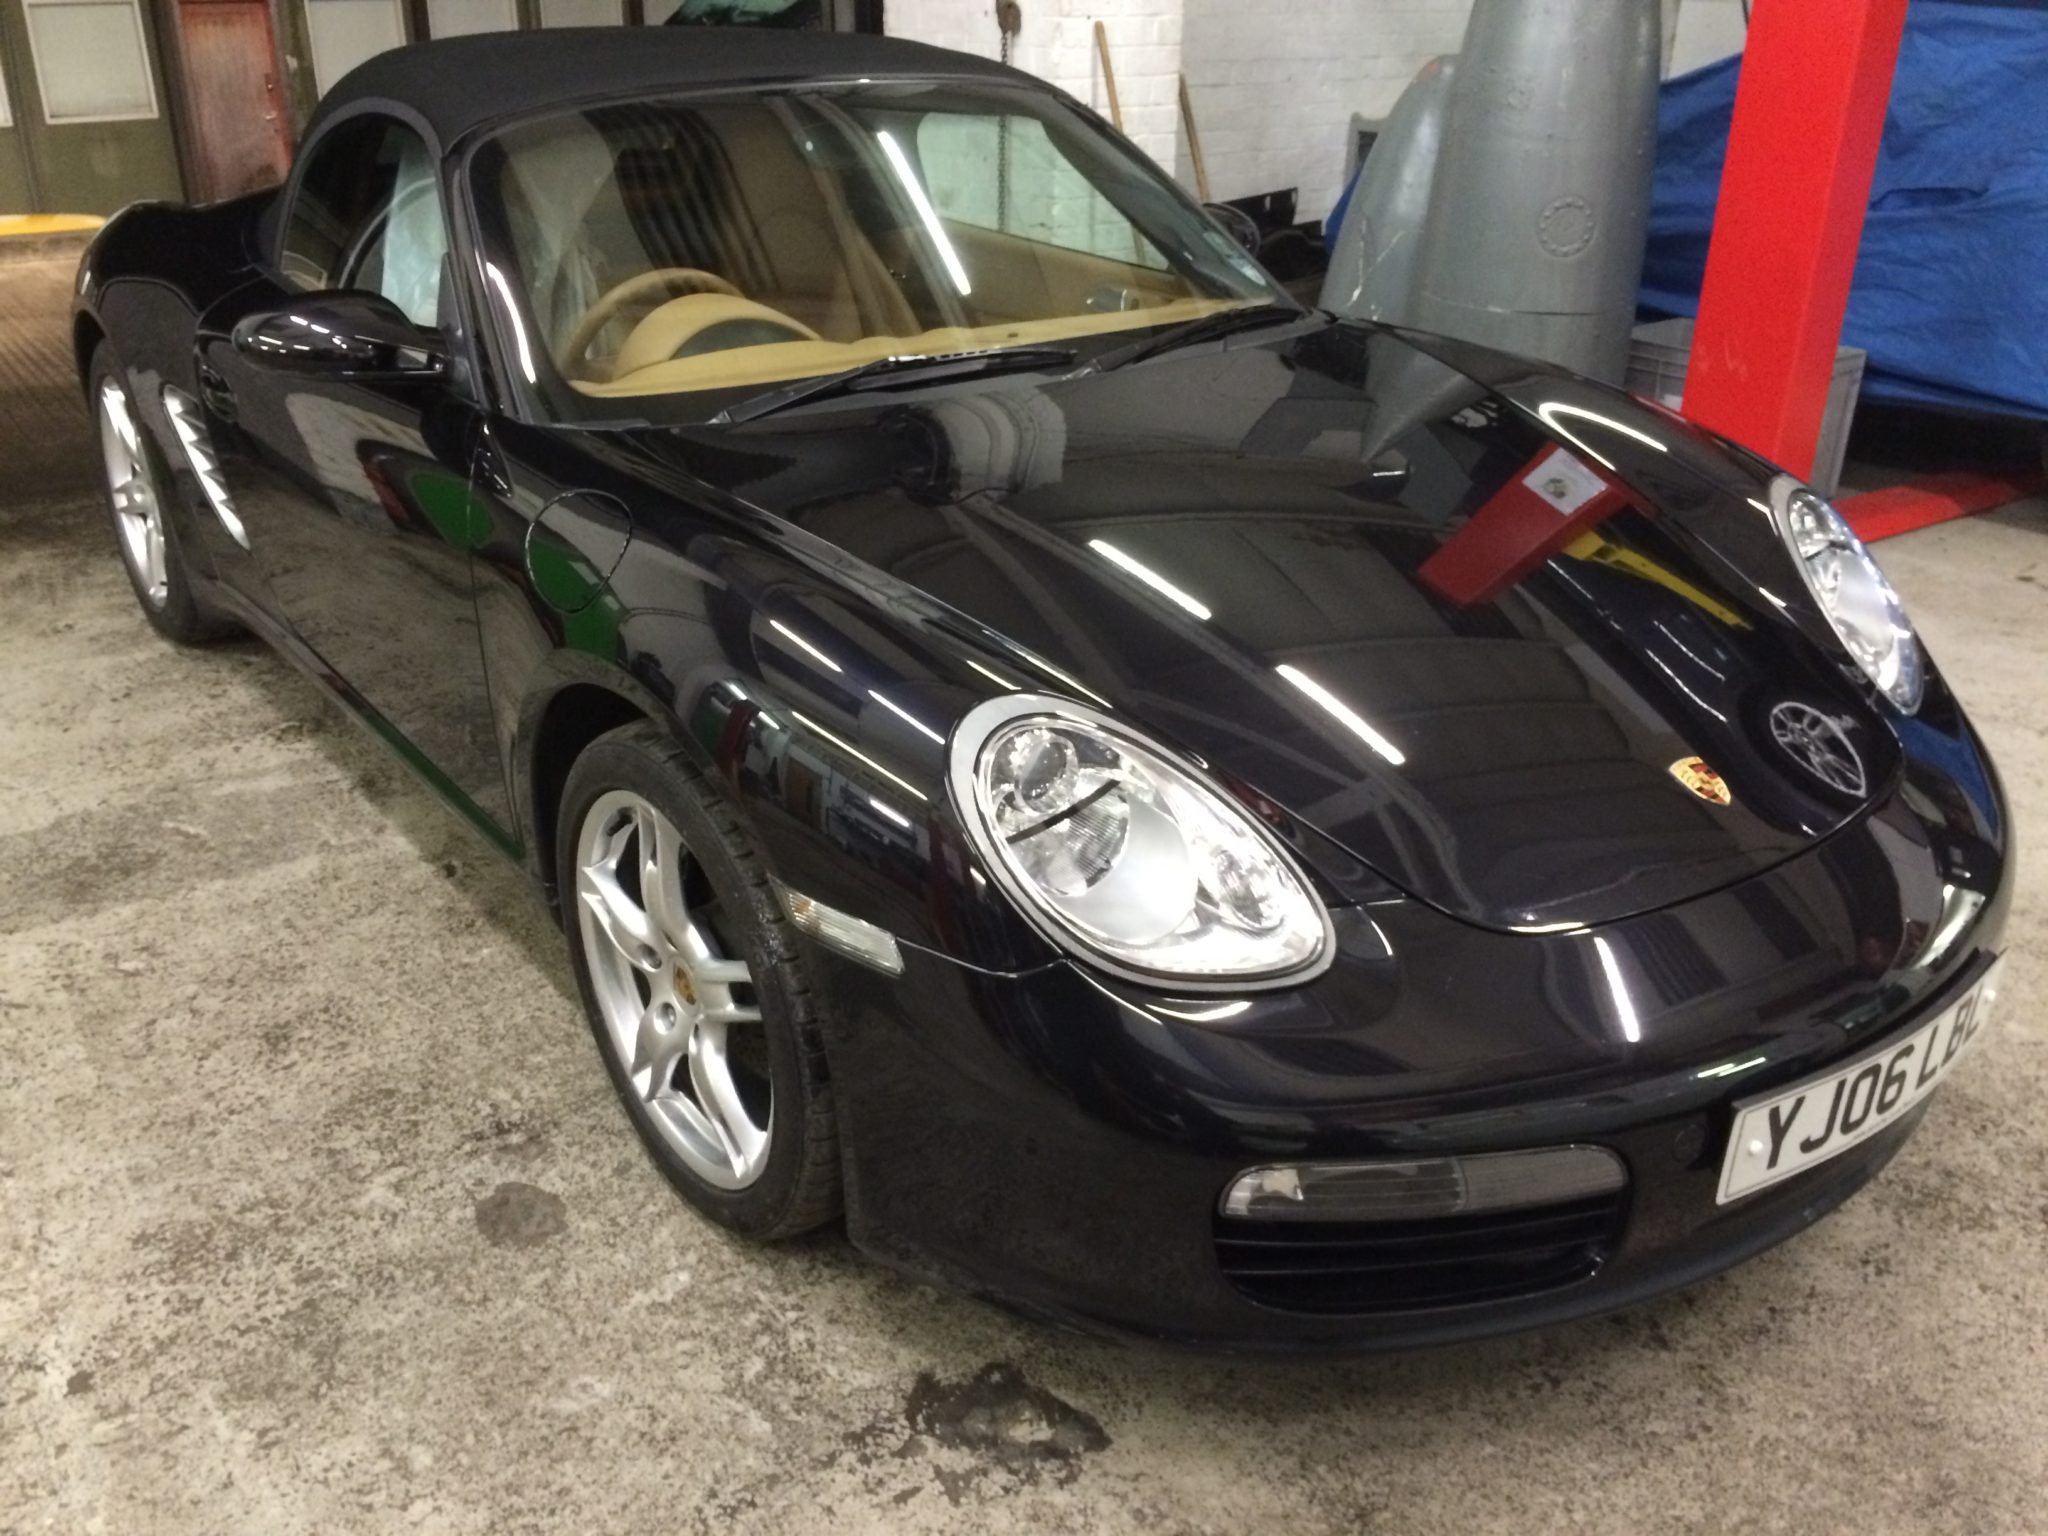 Gleaming 987 Boxster